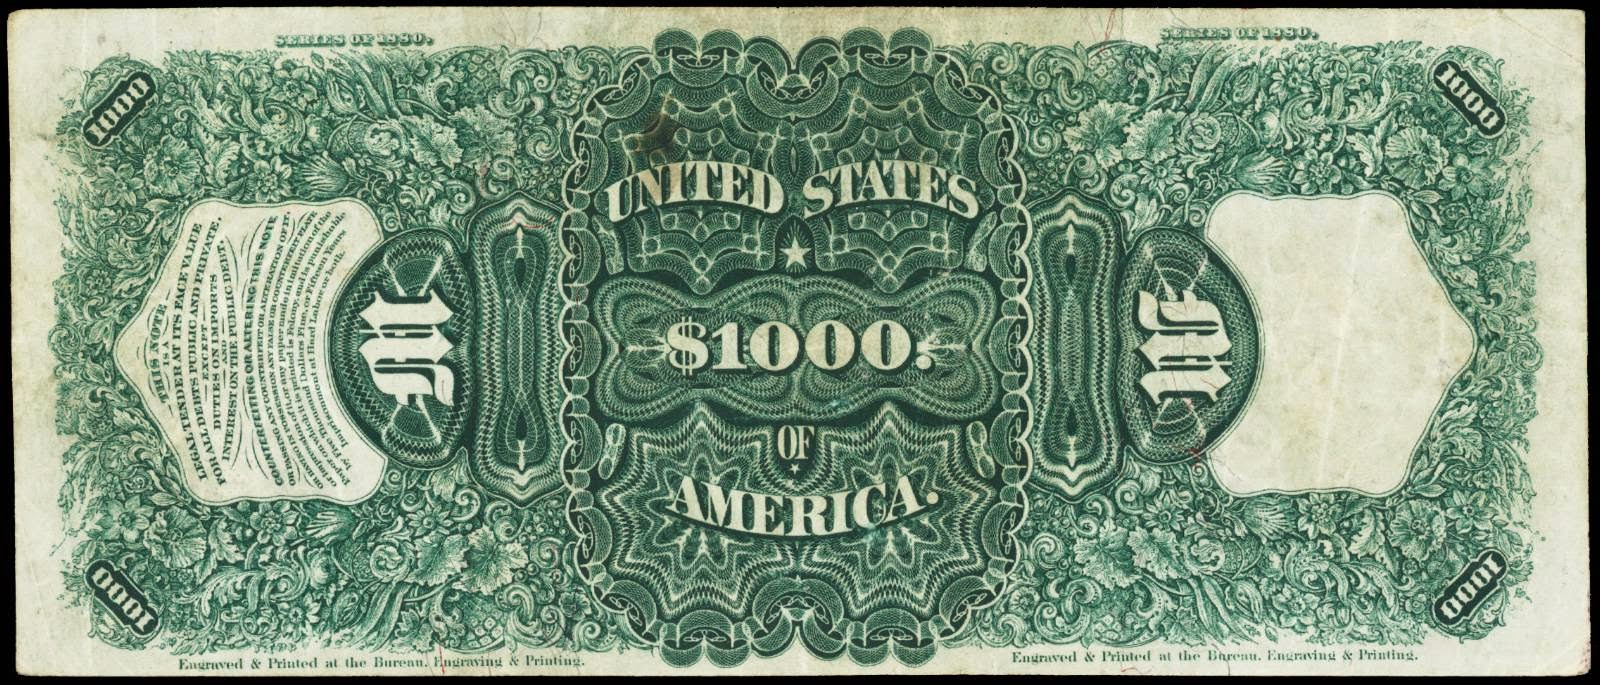 1880 $1000 Dollars United States Note